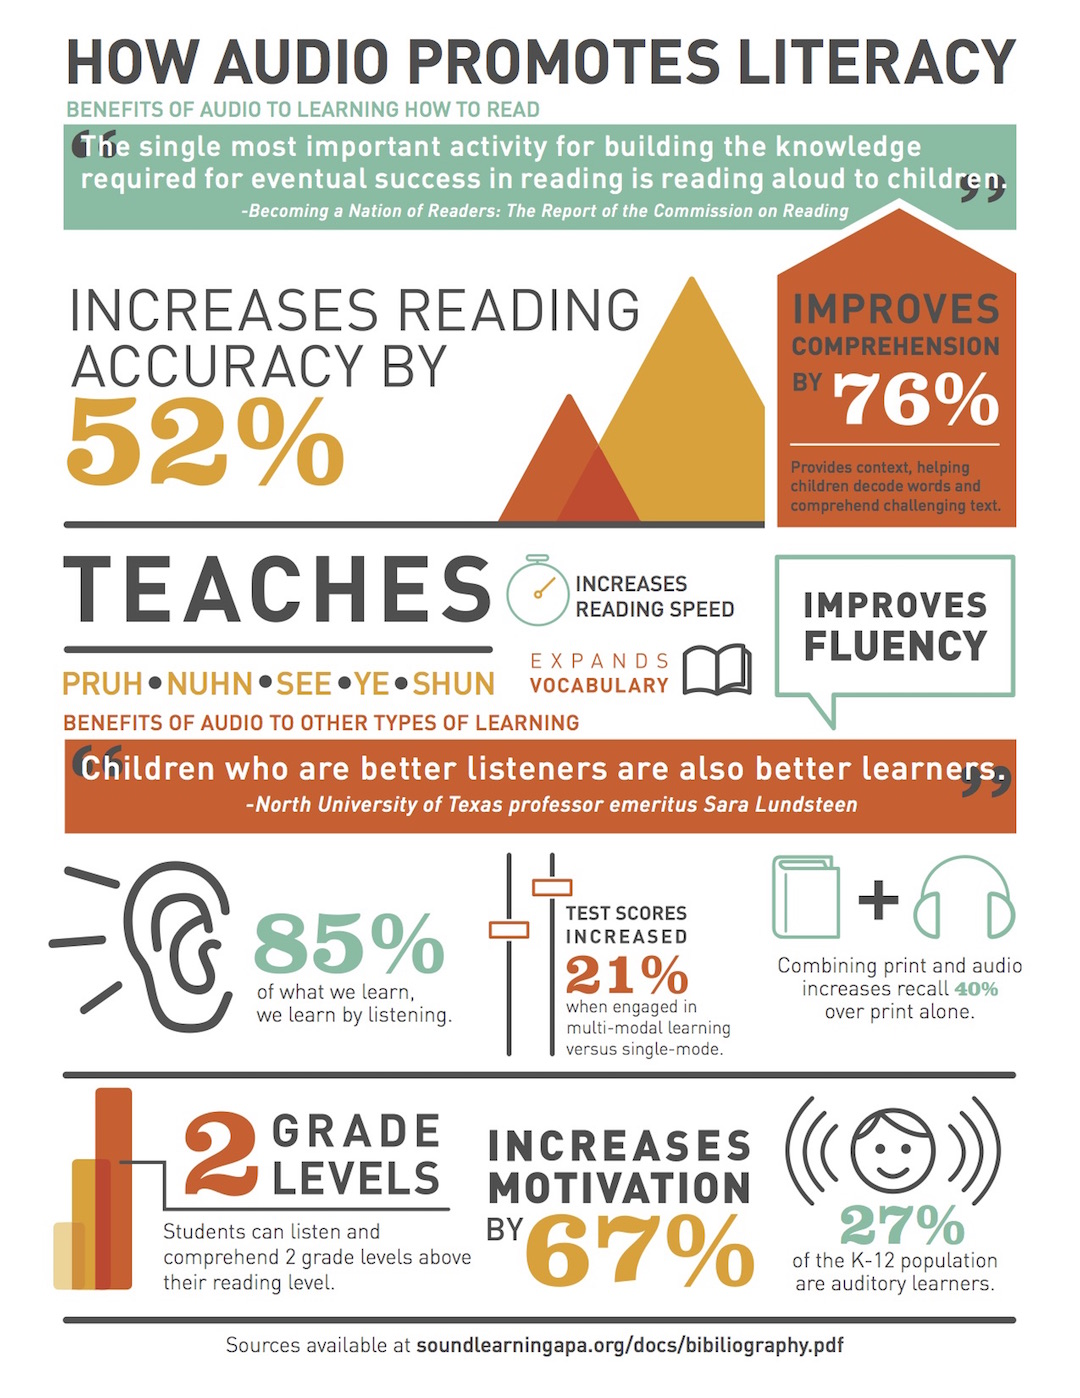 How audiobooks promote literacy #infographic